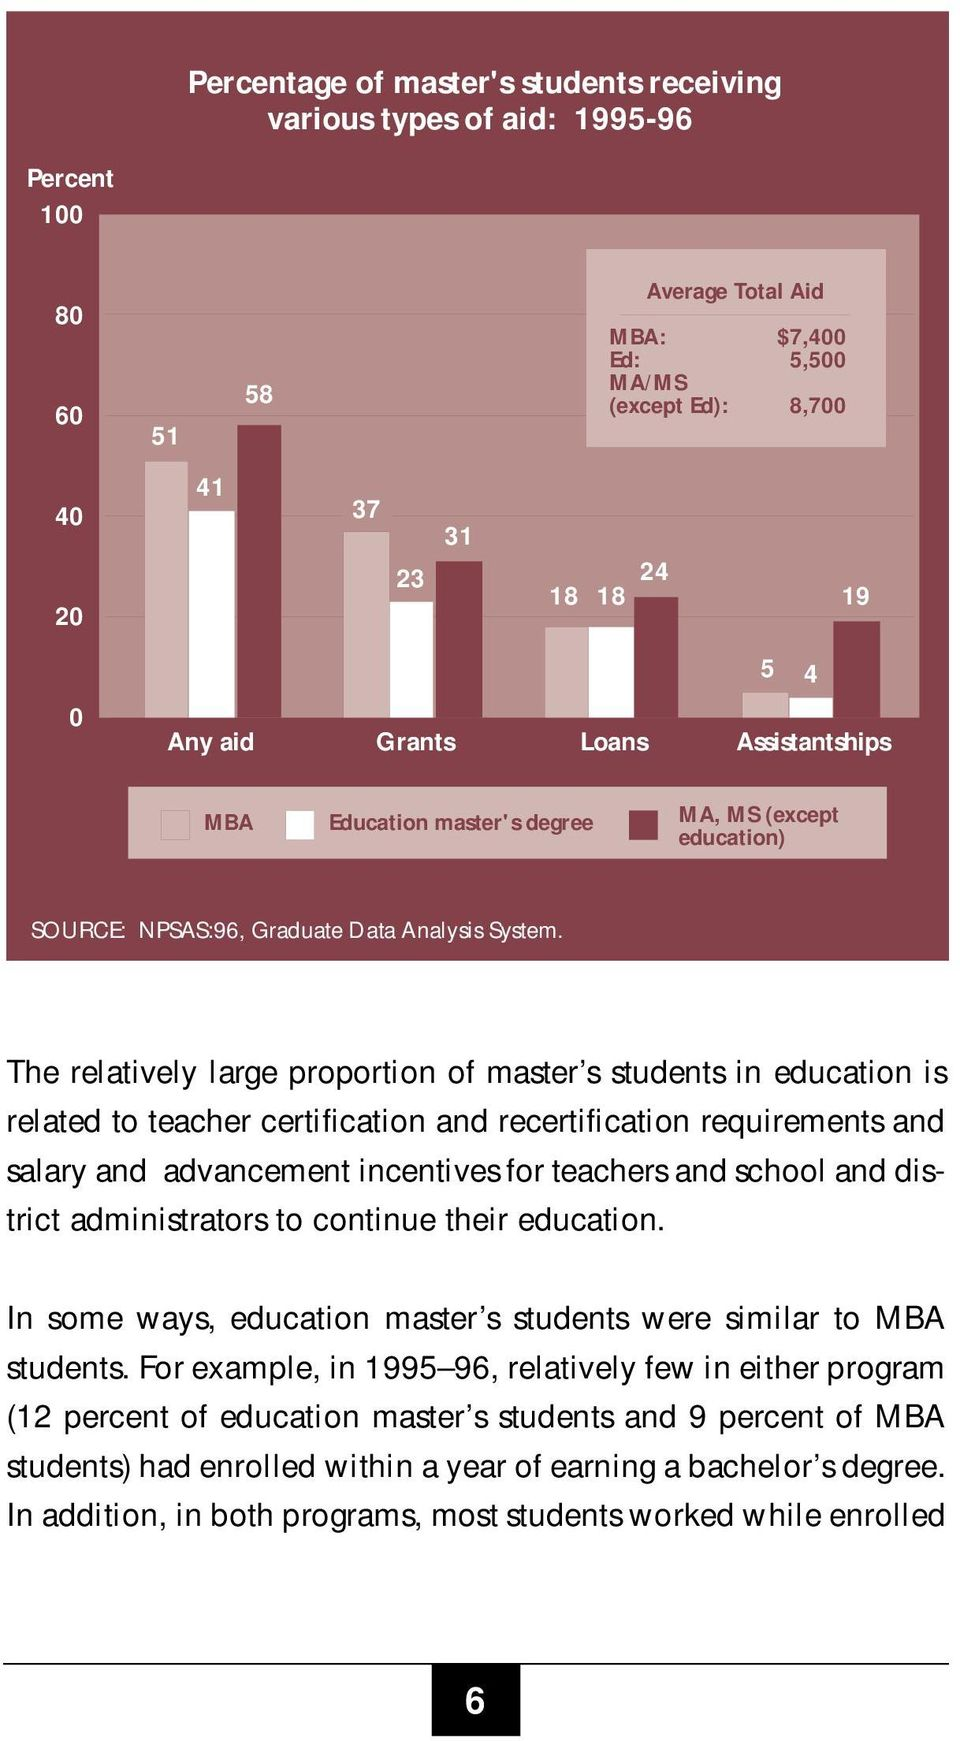 The relatively large proportion of master s students in education is related to teacher certification and recertification requirements and salary and advancement incentives for teachers and school